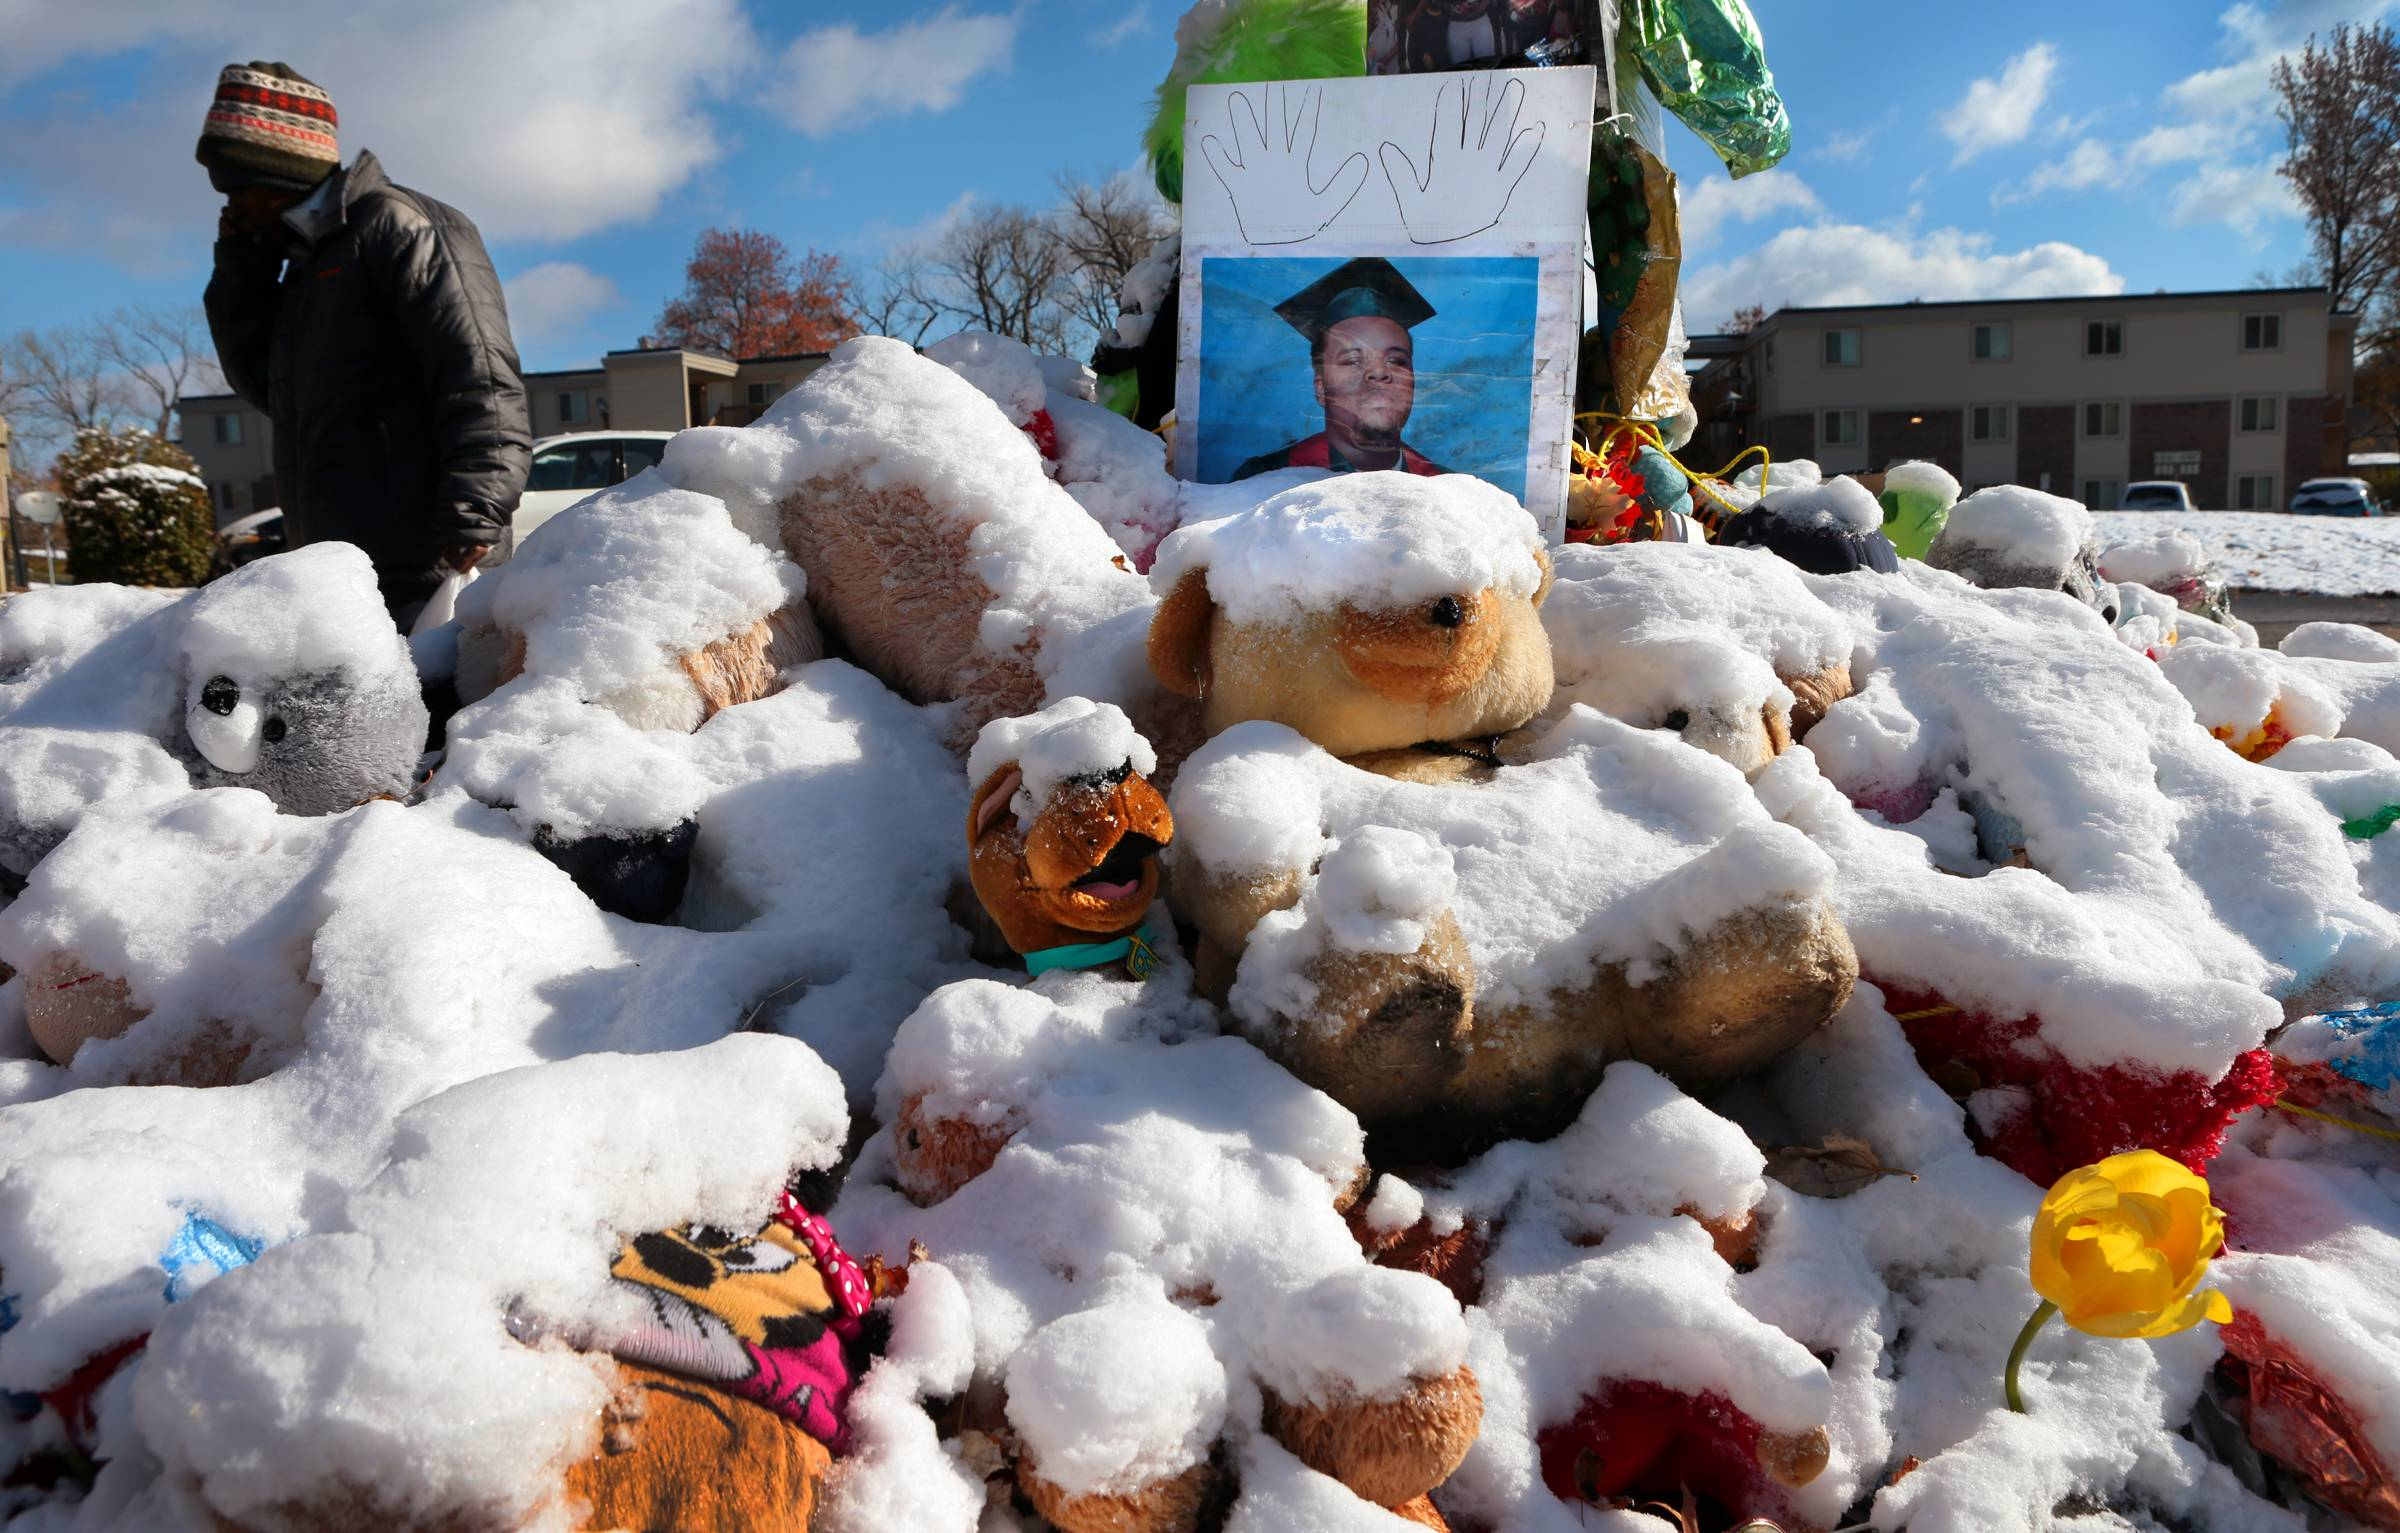 A high school graduation photo of Michael Brown rests on top of a snow-covered memorial Monday, more than three months after the black teen was shot and killed nearby by a white policeman in Ferguson, Mo. The shooting sparked weeks of violent protests and  Missouri Governor Jay Nixon declaring a state of emergency Monday as a grand jury deliberated on whether to charge Ferguson police officer Darren Wilson in the death.